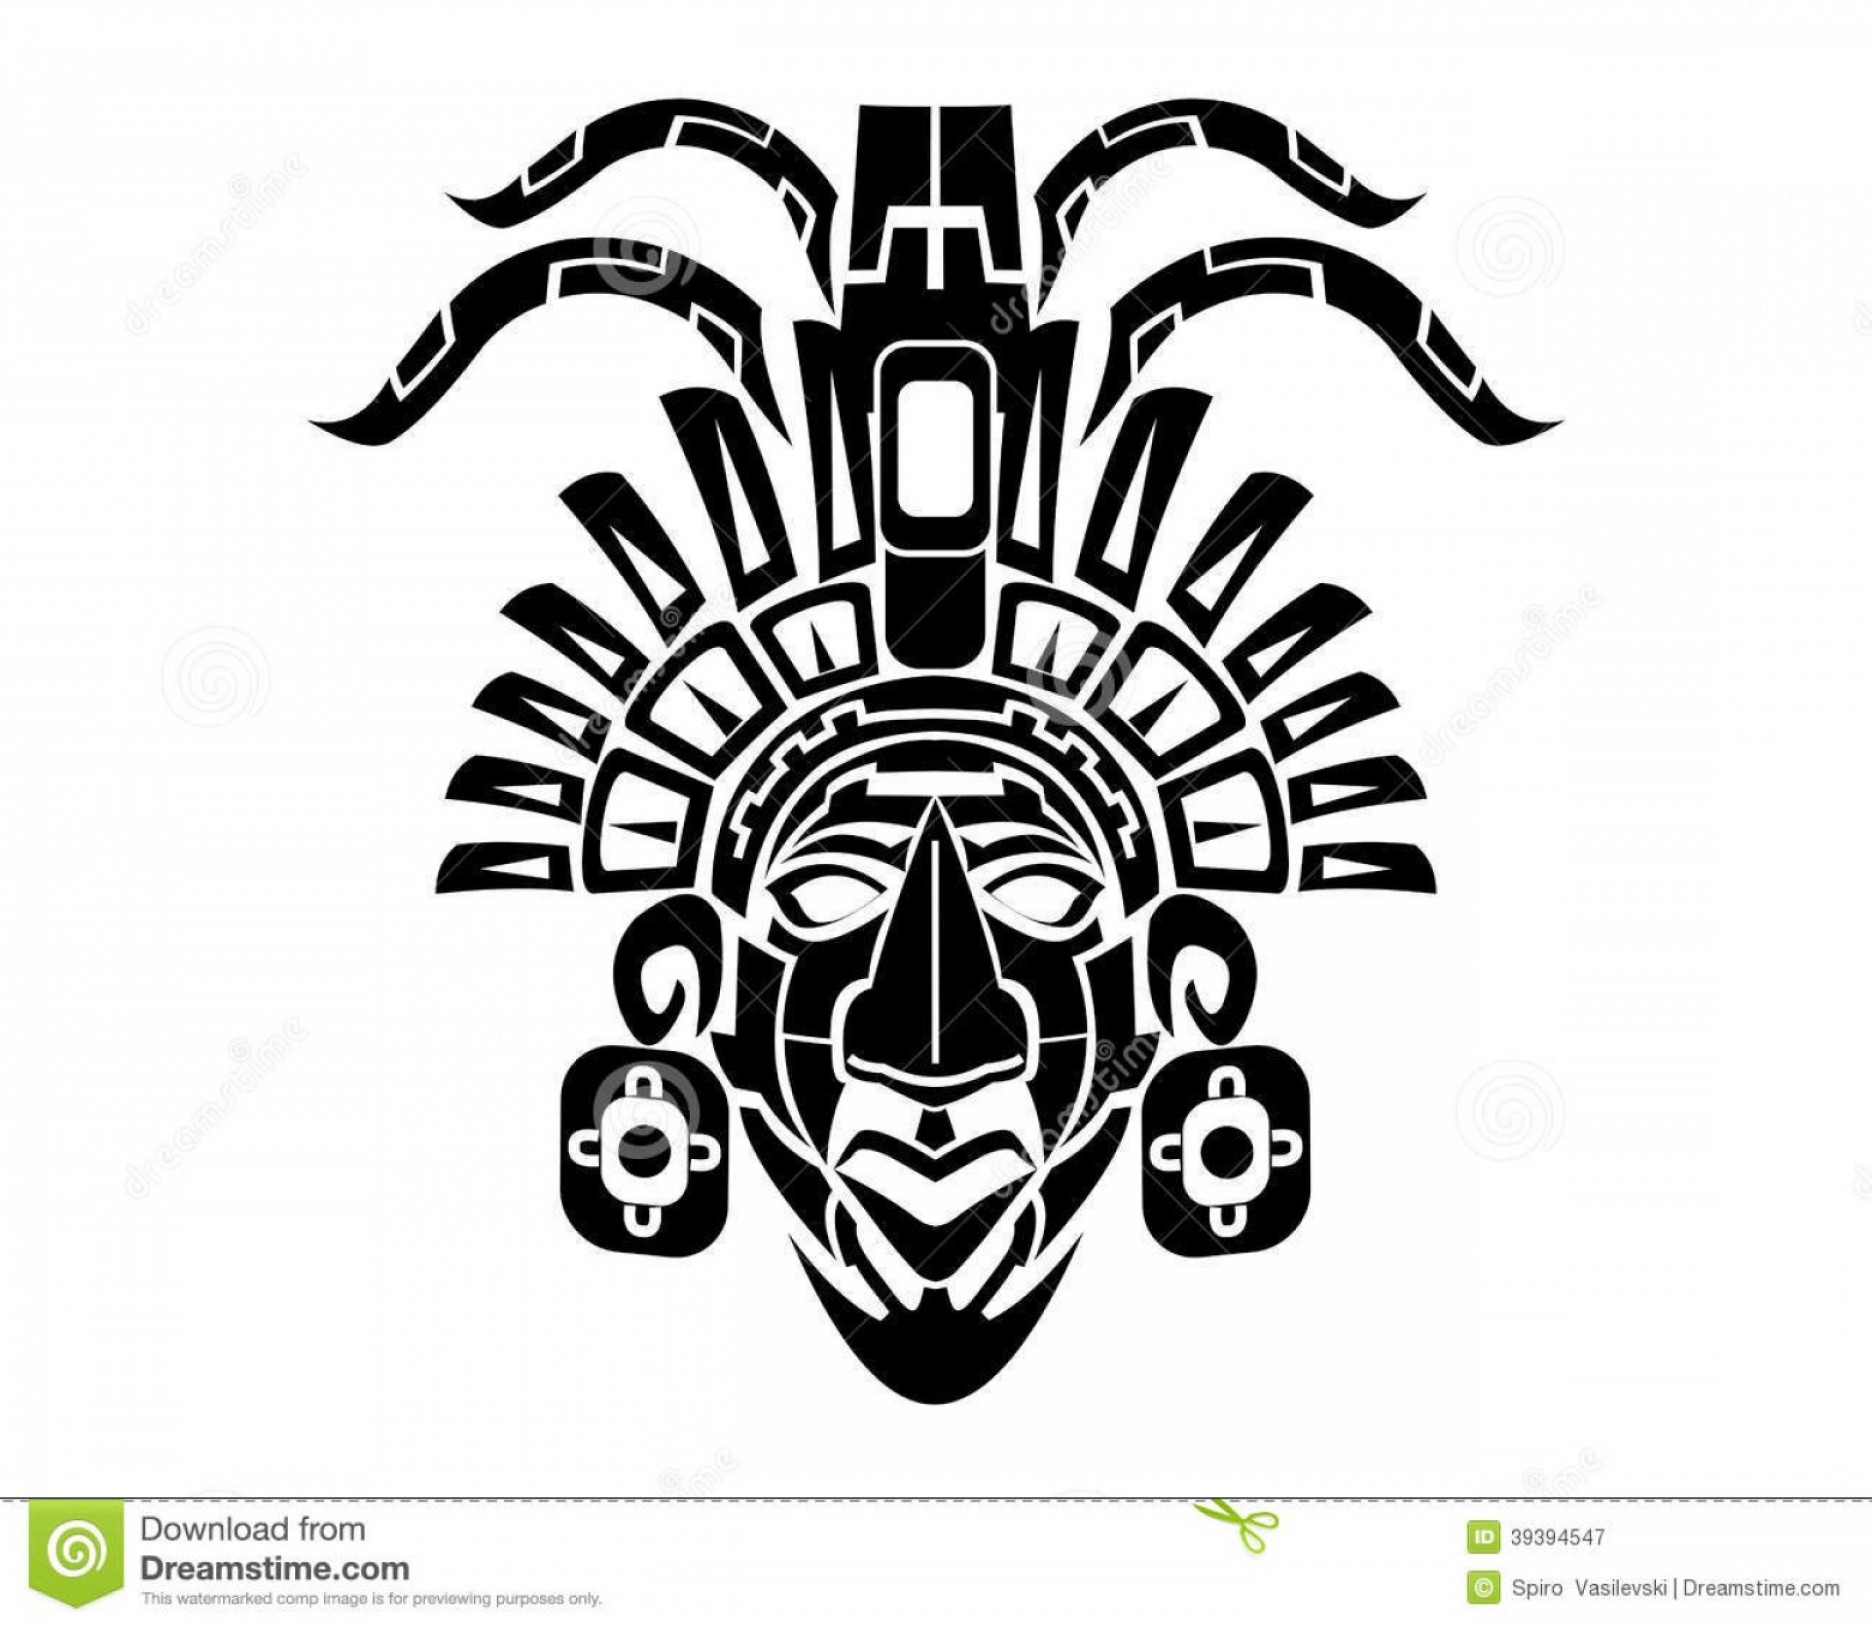 Mayan Vector: Royalty Free Stock Photography Mayan Mack Tribal Tattoo Mask Vector Illustration Image